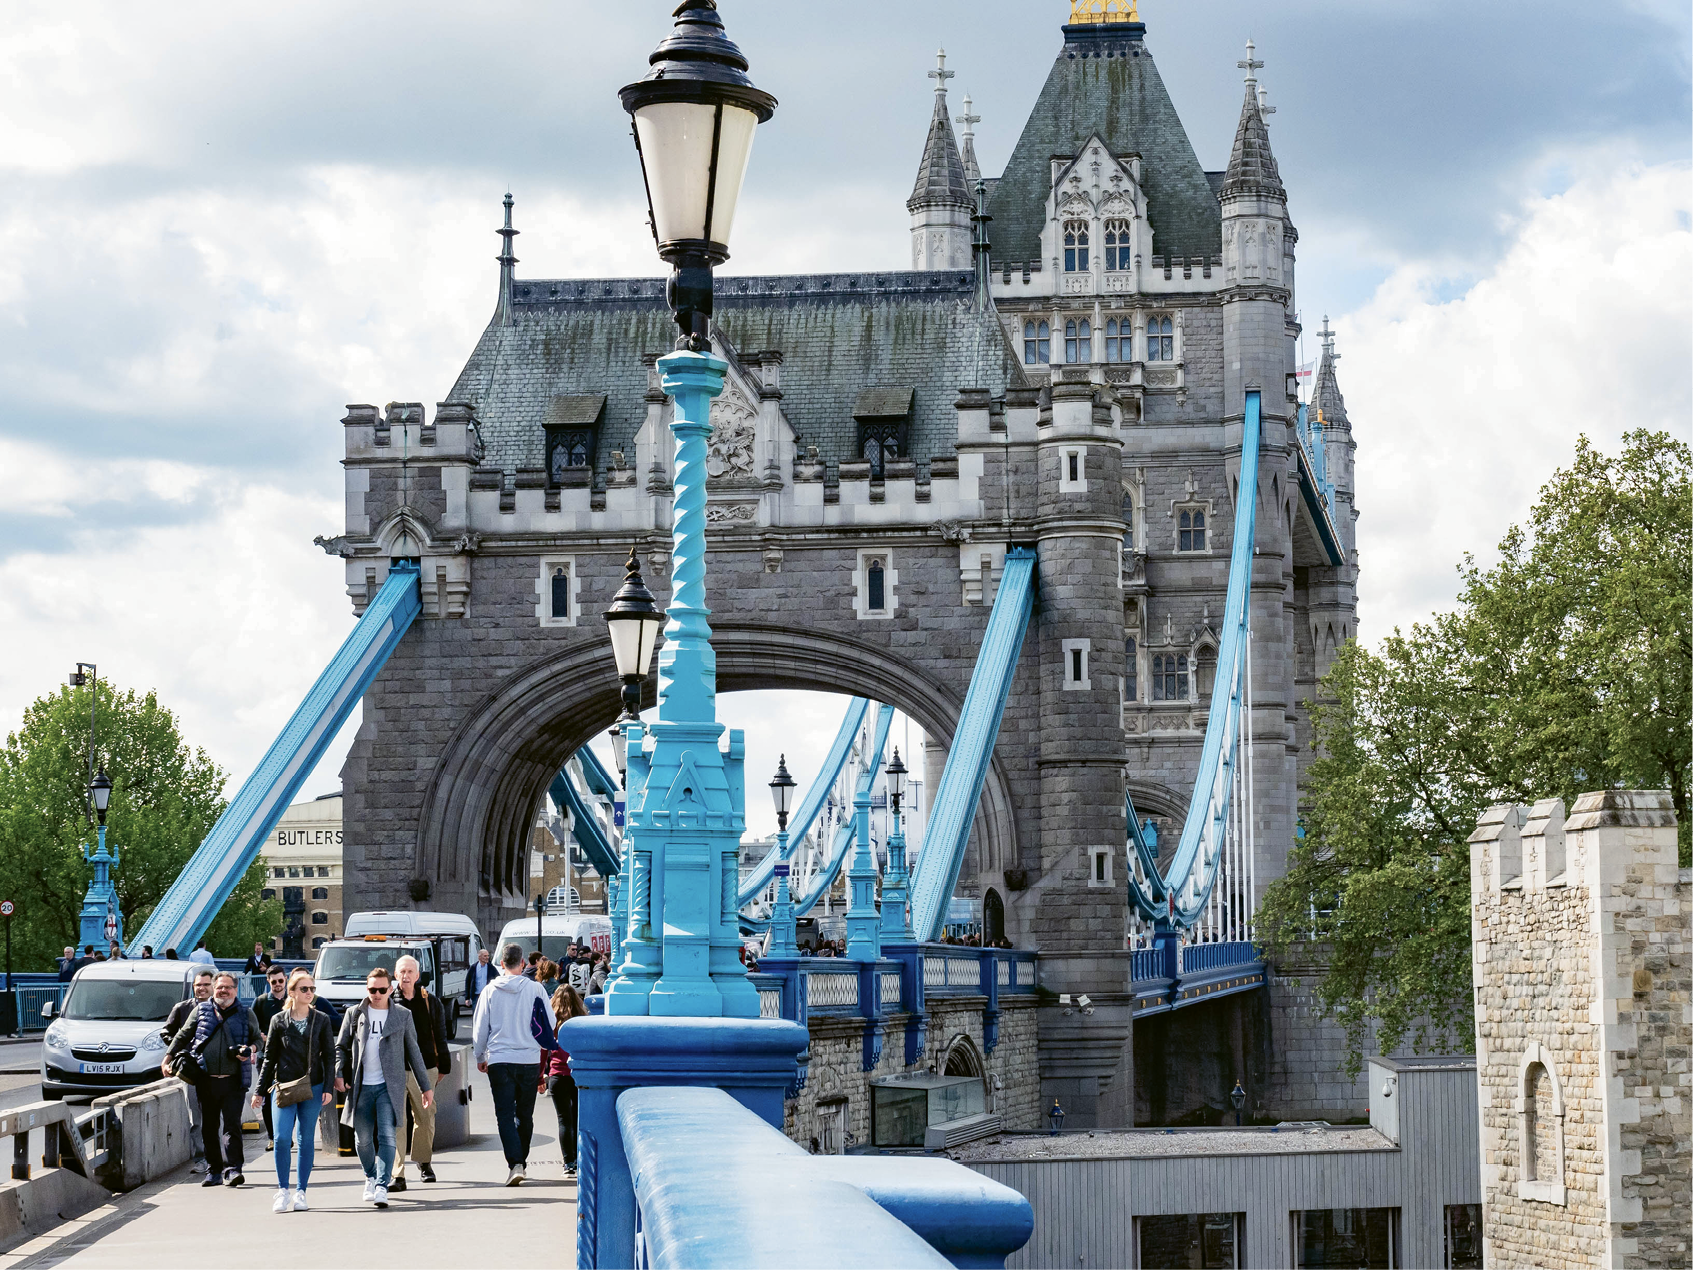 Following the River Thames, travelers can get close-up views of some of London's iconic buildings, including the Tower Bridge...